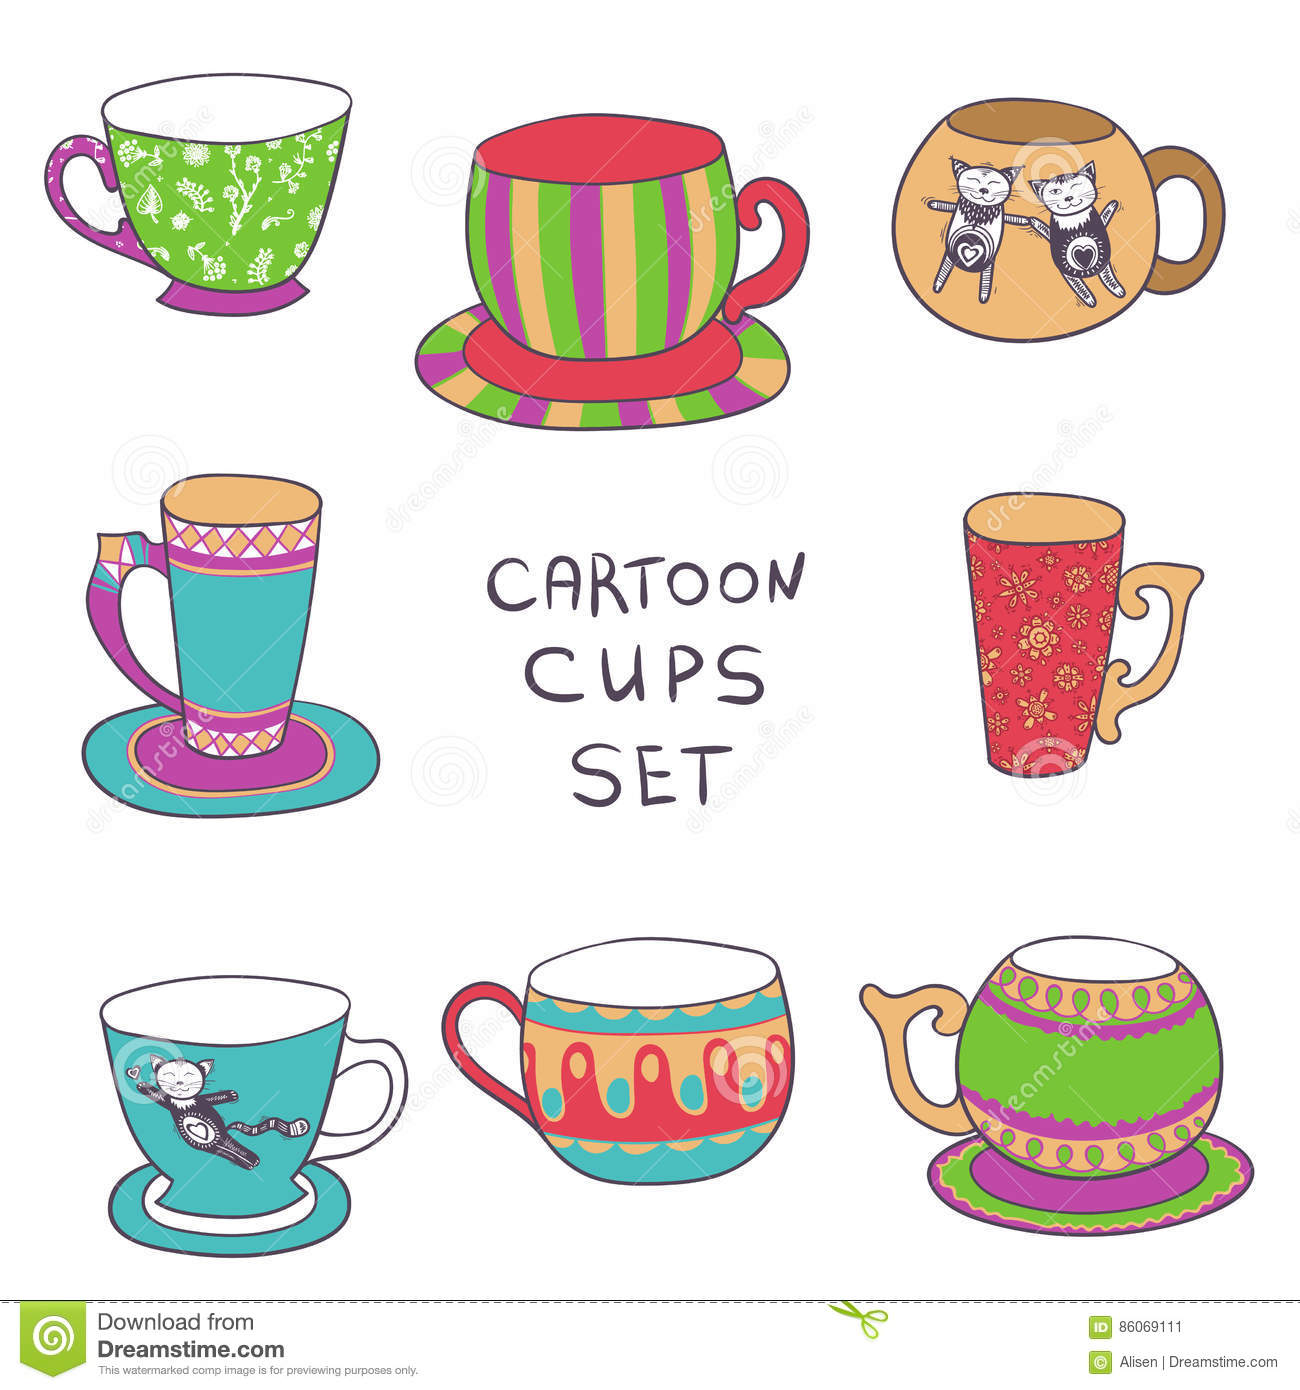 Doodle Style Cartoon Cups Vector Tea Or Coffee Set Stock Vector Illustration Of Icon Decorative 86069111